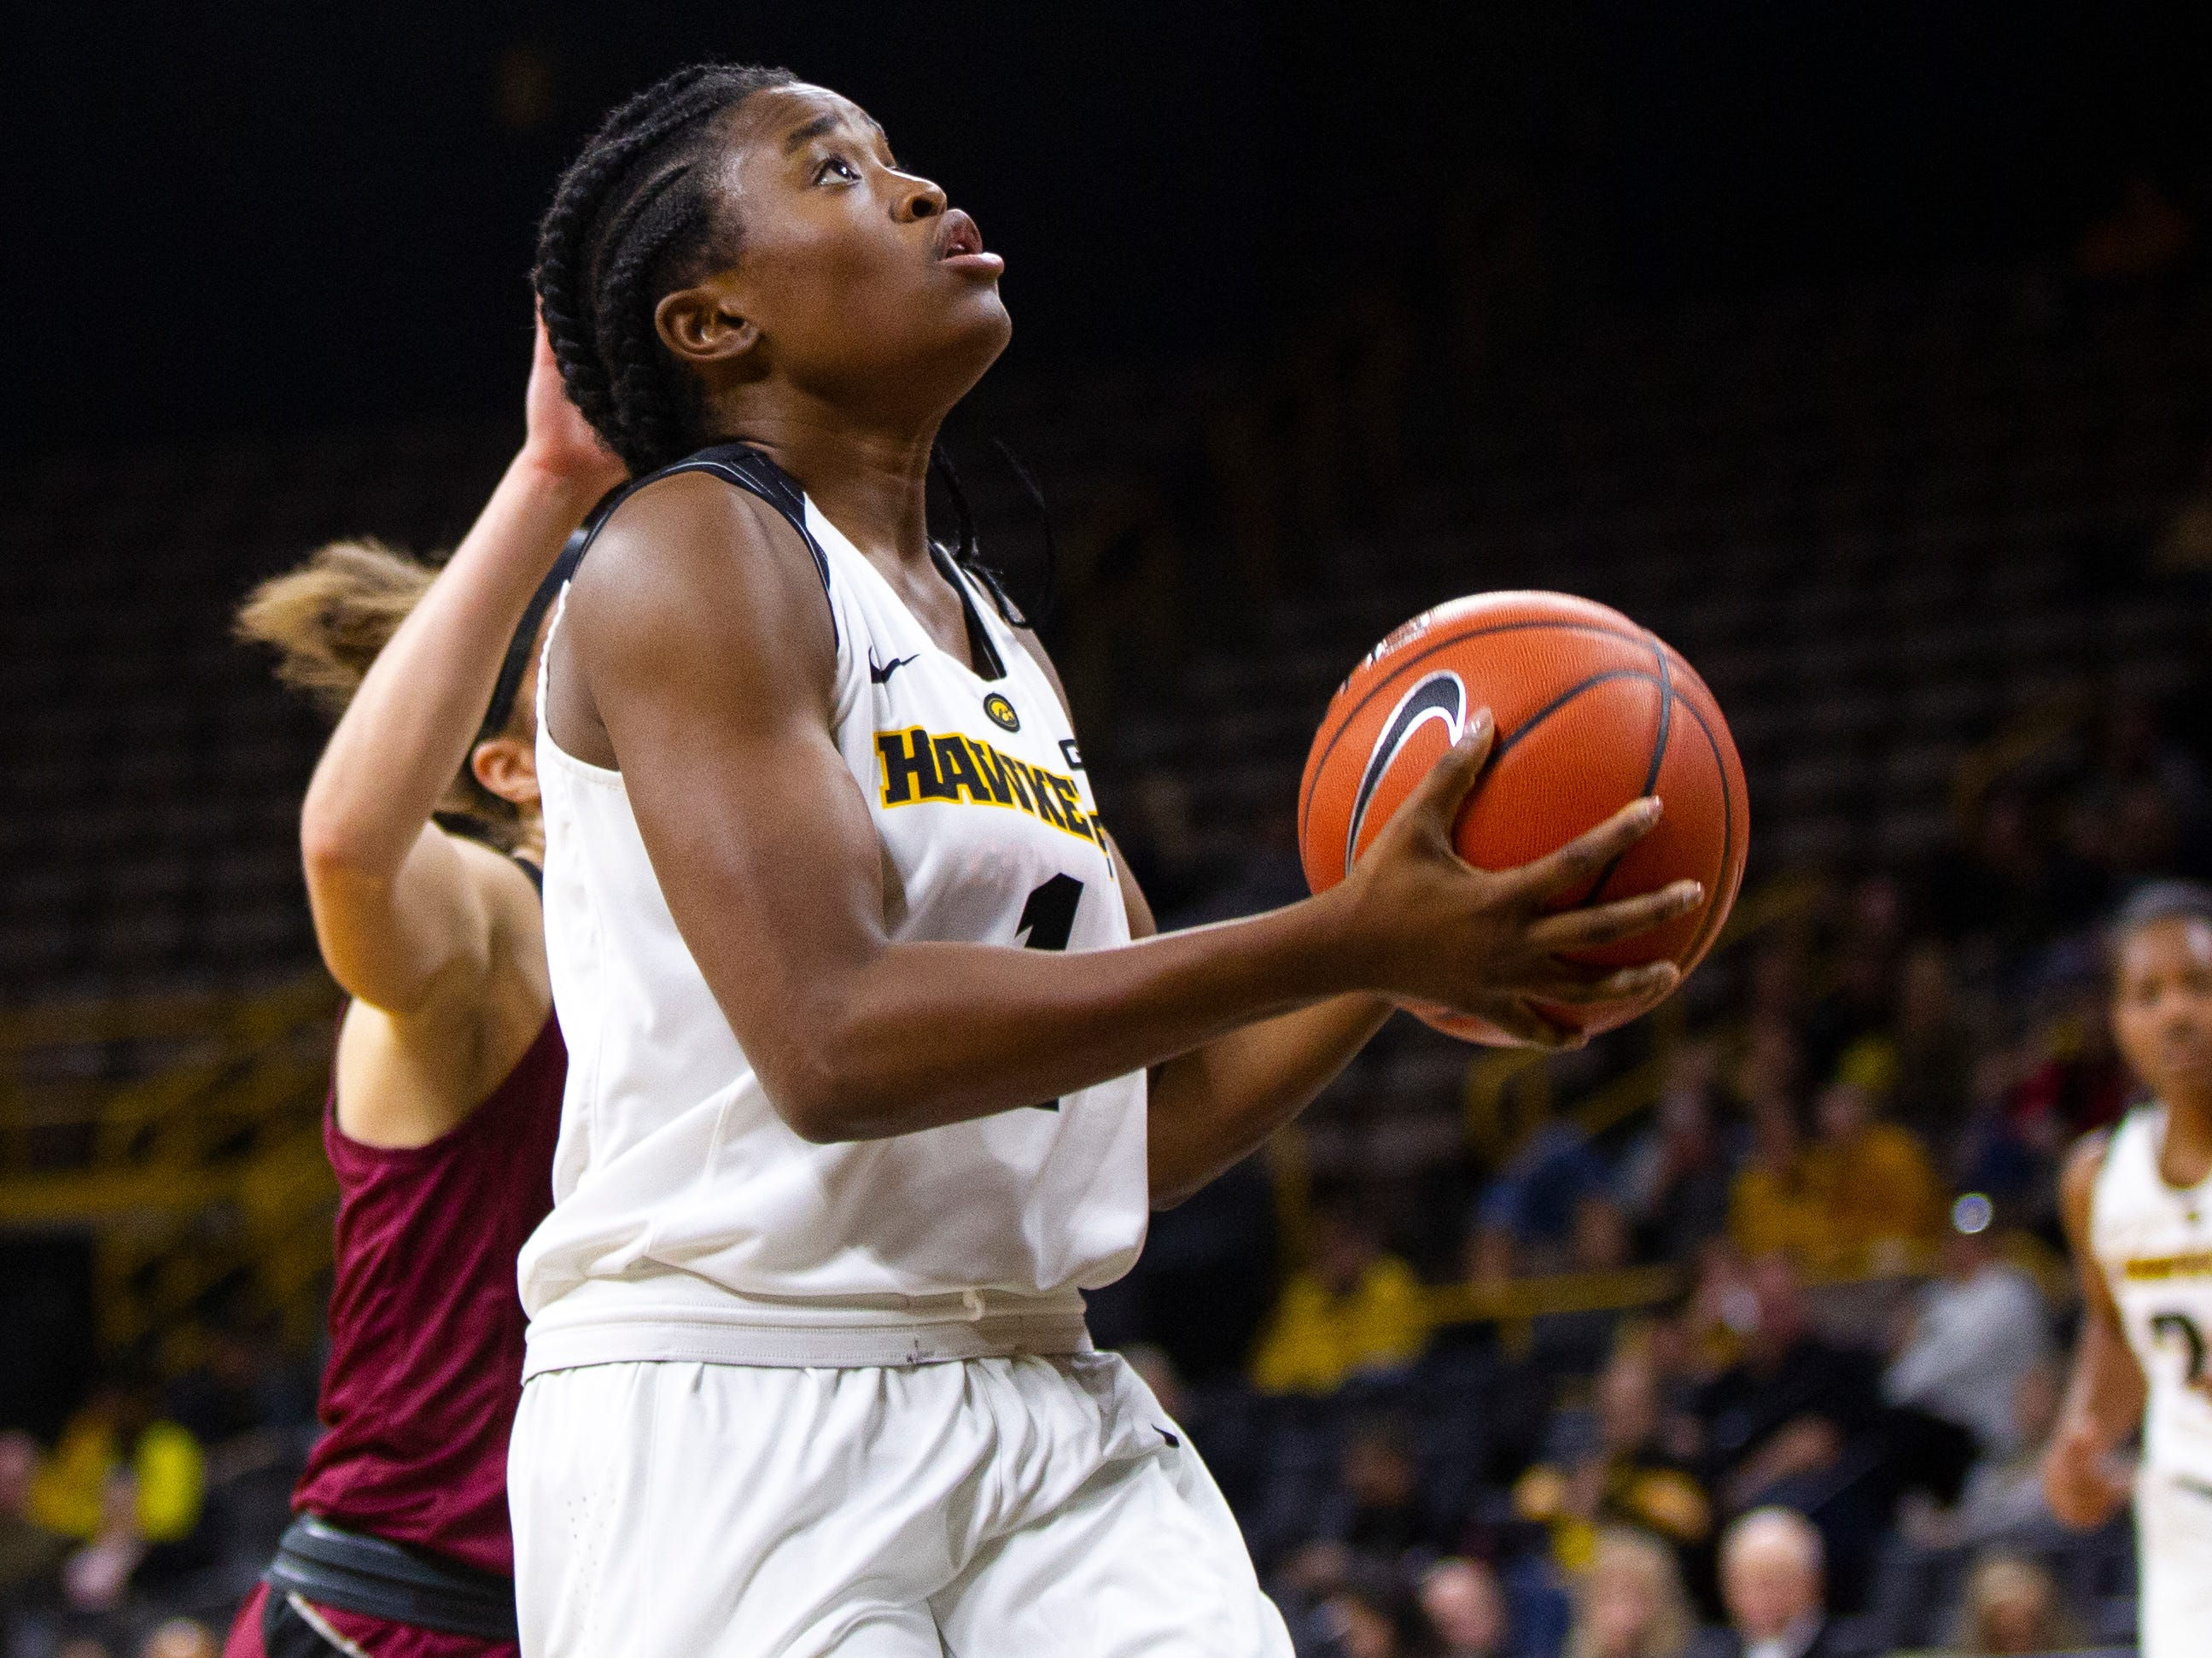 Iowa guard Tomi Taiwo (1) attempts a shot during an NCAA women's basketball game on Saturday, Nov. 17, 2018, at Carver-Hawkeye Arena in Iowa City.